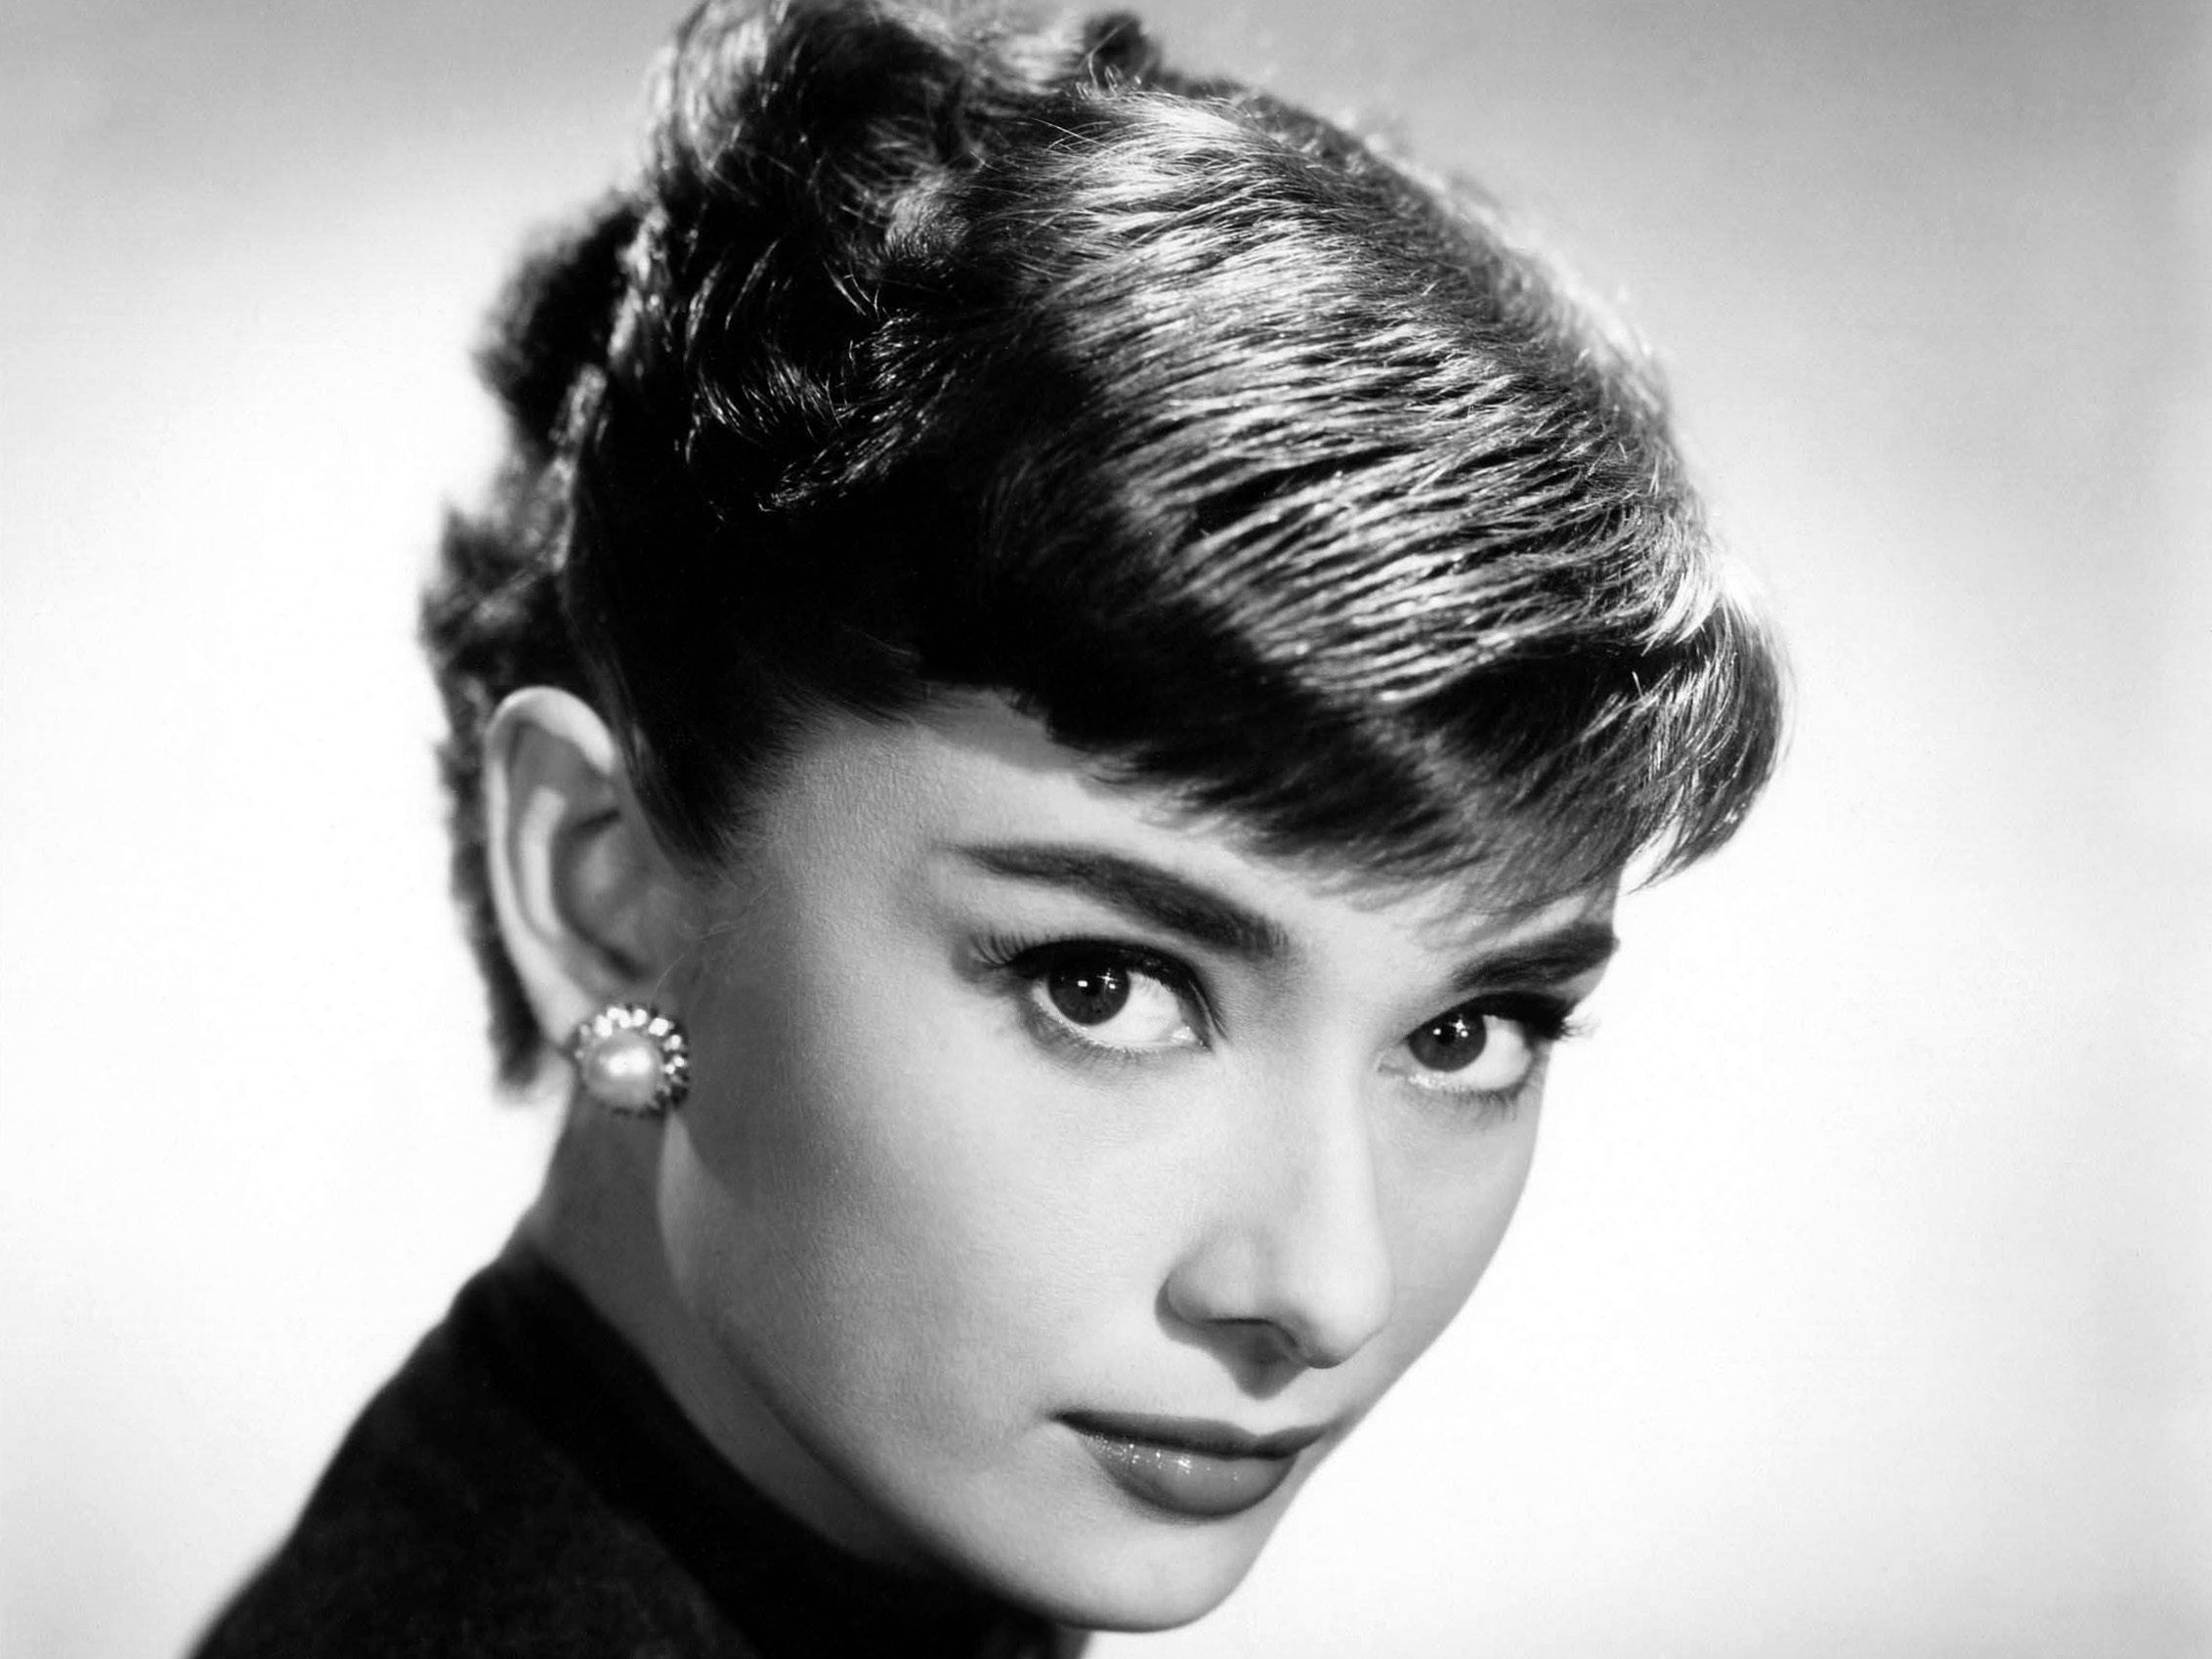 Audrey Hepburn Computer Wallpapers Desktop Backgrounds 2264x1698 2264x1698